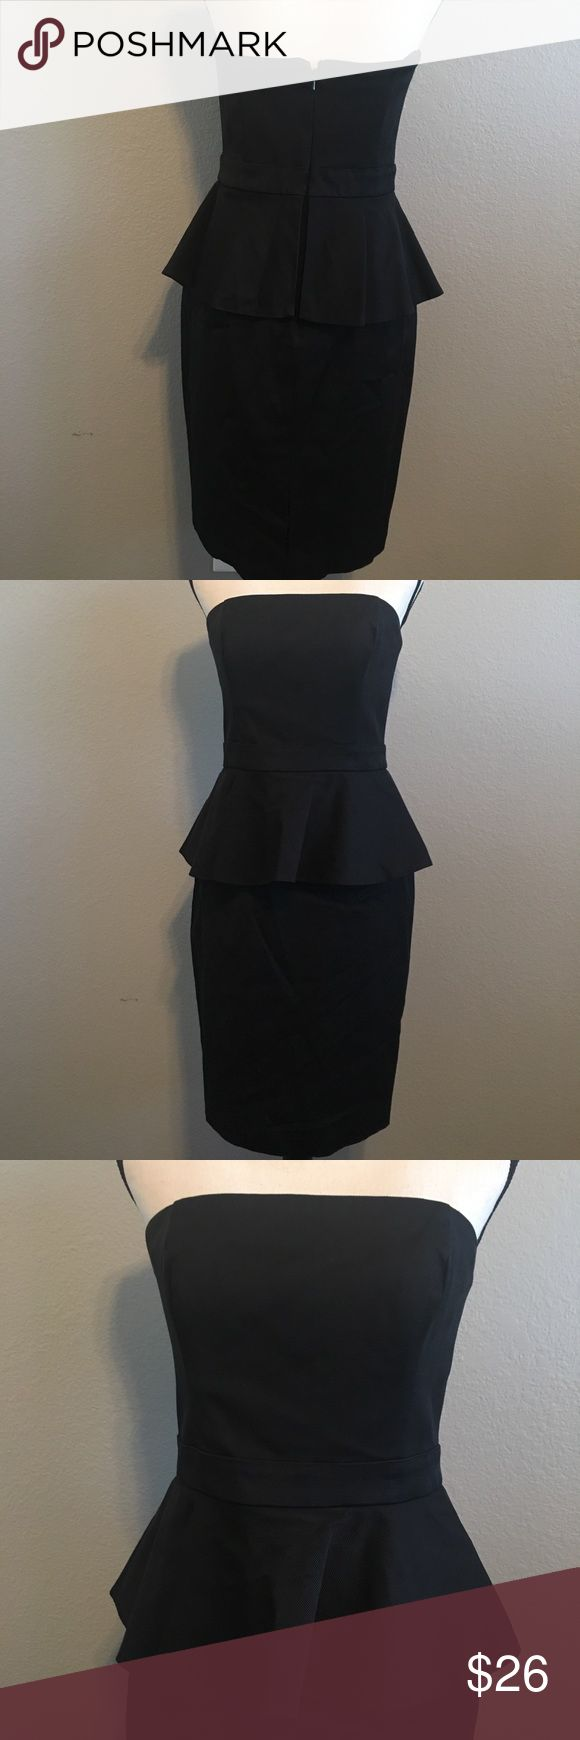 """White House Black Market Black Peplum Dress WHBM Black Strapless Peplum Dress. Has caged top with slip grips to help keep the dress in place. Thicker material, bottom skirt has some stretch to it.    Chest: 30"""" (flat) with a few extra inches for chest.  Waist: 28"""" Hips: 37"""" Length: 30"""" White House Black Market Dresses Strapless"""